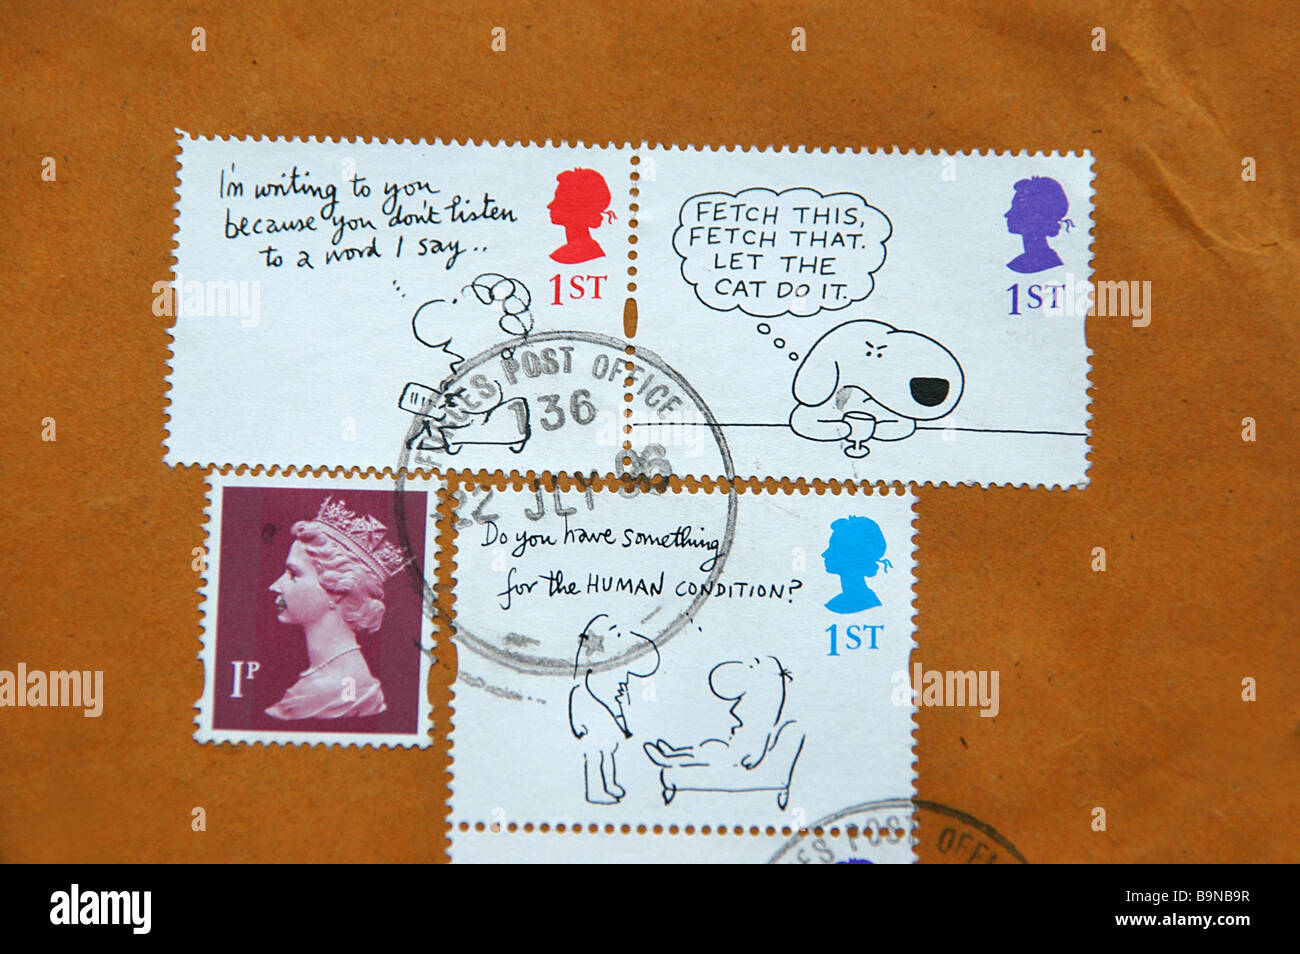 UK Armed Forces Stamp On Snoopy Postage Stamps